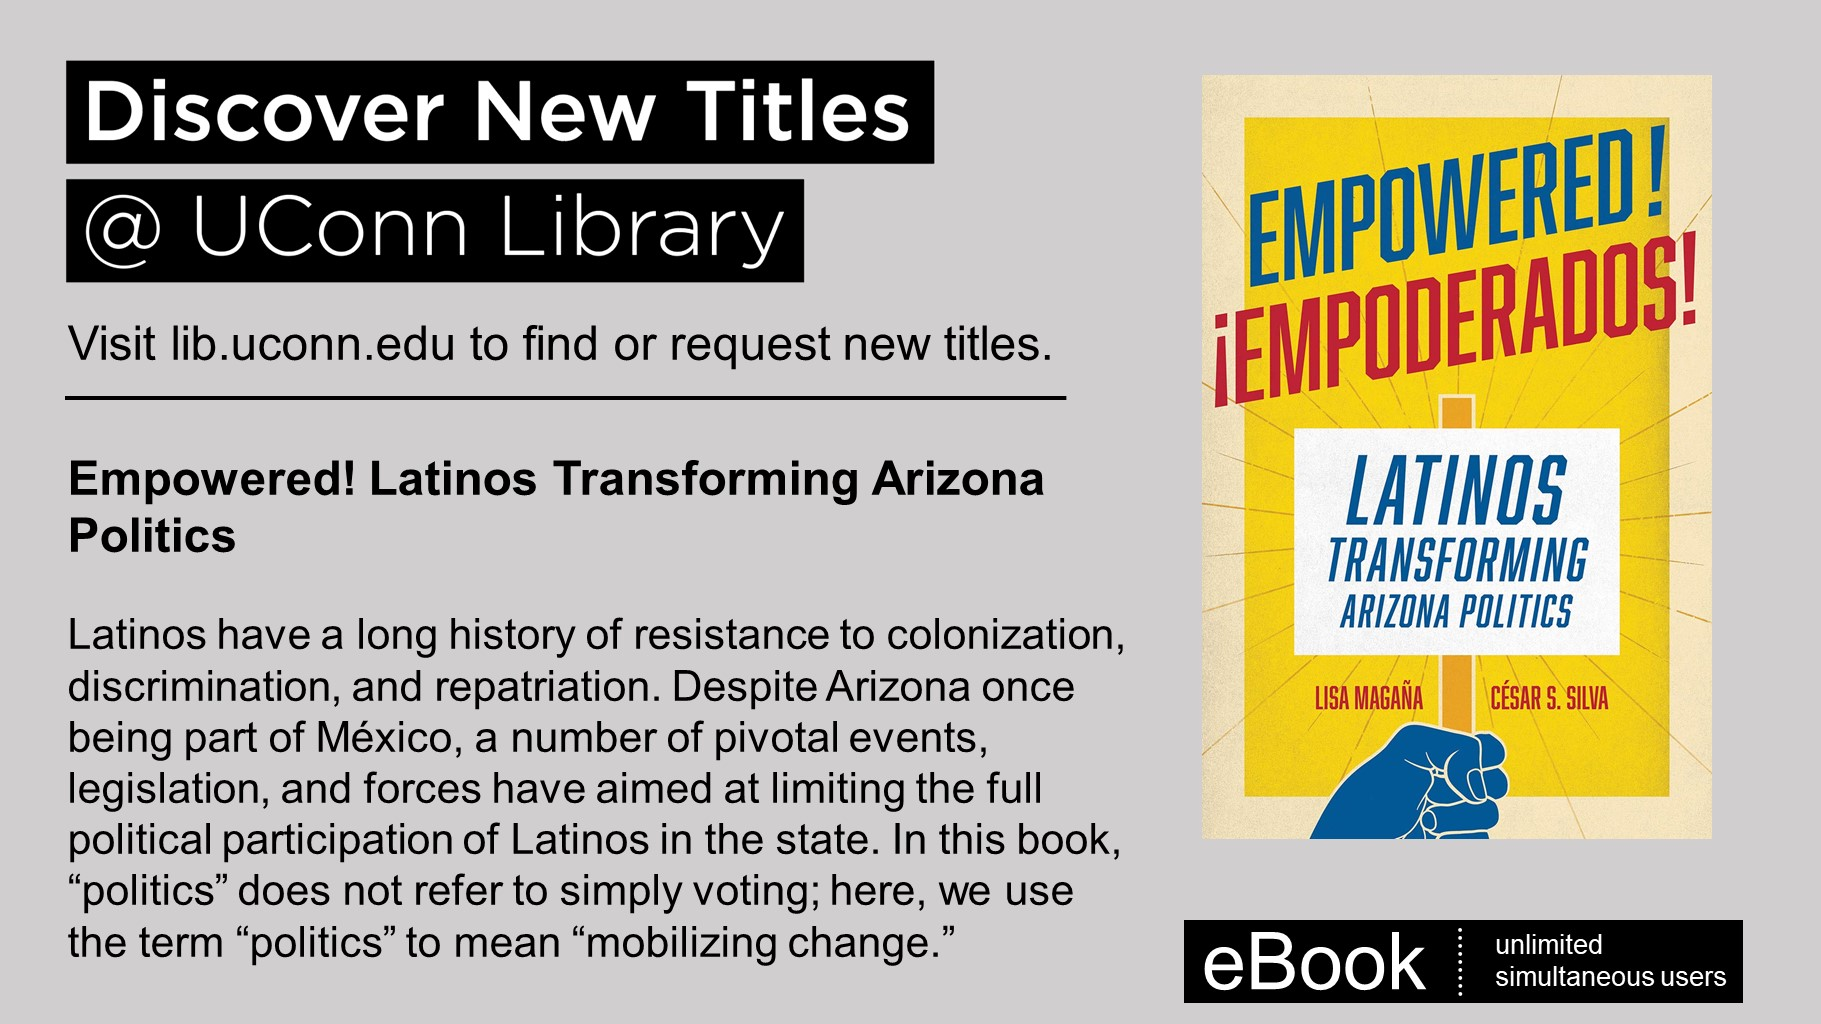 """Discover New Titles at UConn Library Visit lib.uconn.edu to find or request new titles. Empowered! Latinos Transforming Arizona Politics Latinos have a long history of resistance to colonization, discrimination, and repatriation. Despite Arizona once being part of México, a number of pivotal events, legislation, and forces have aimed at limiting the full political participation of Latinos in the state. In this book, """"politics"""" does not refer to simply voting; here, we use the term """"politics"""" to mean """"mobilizing change."""""""